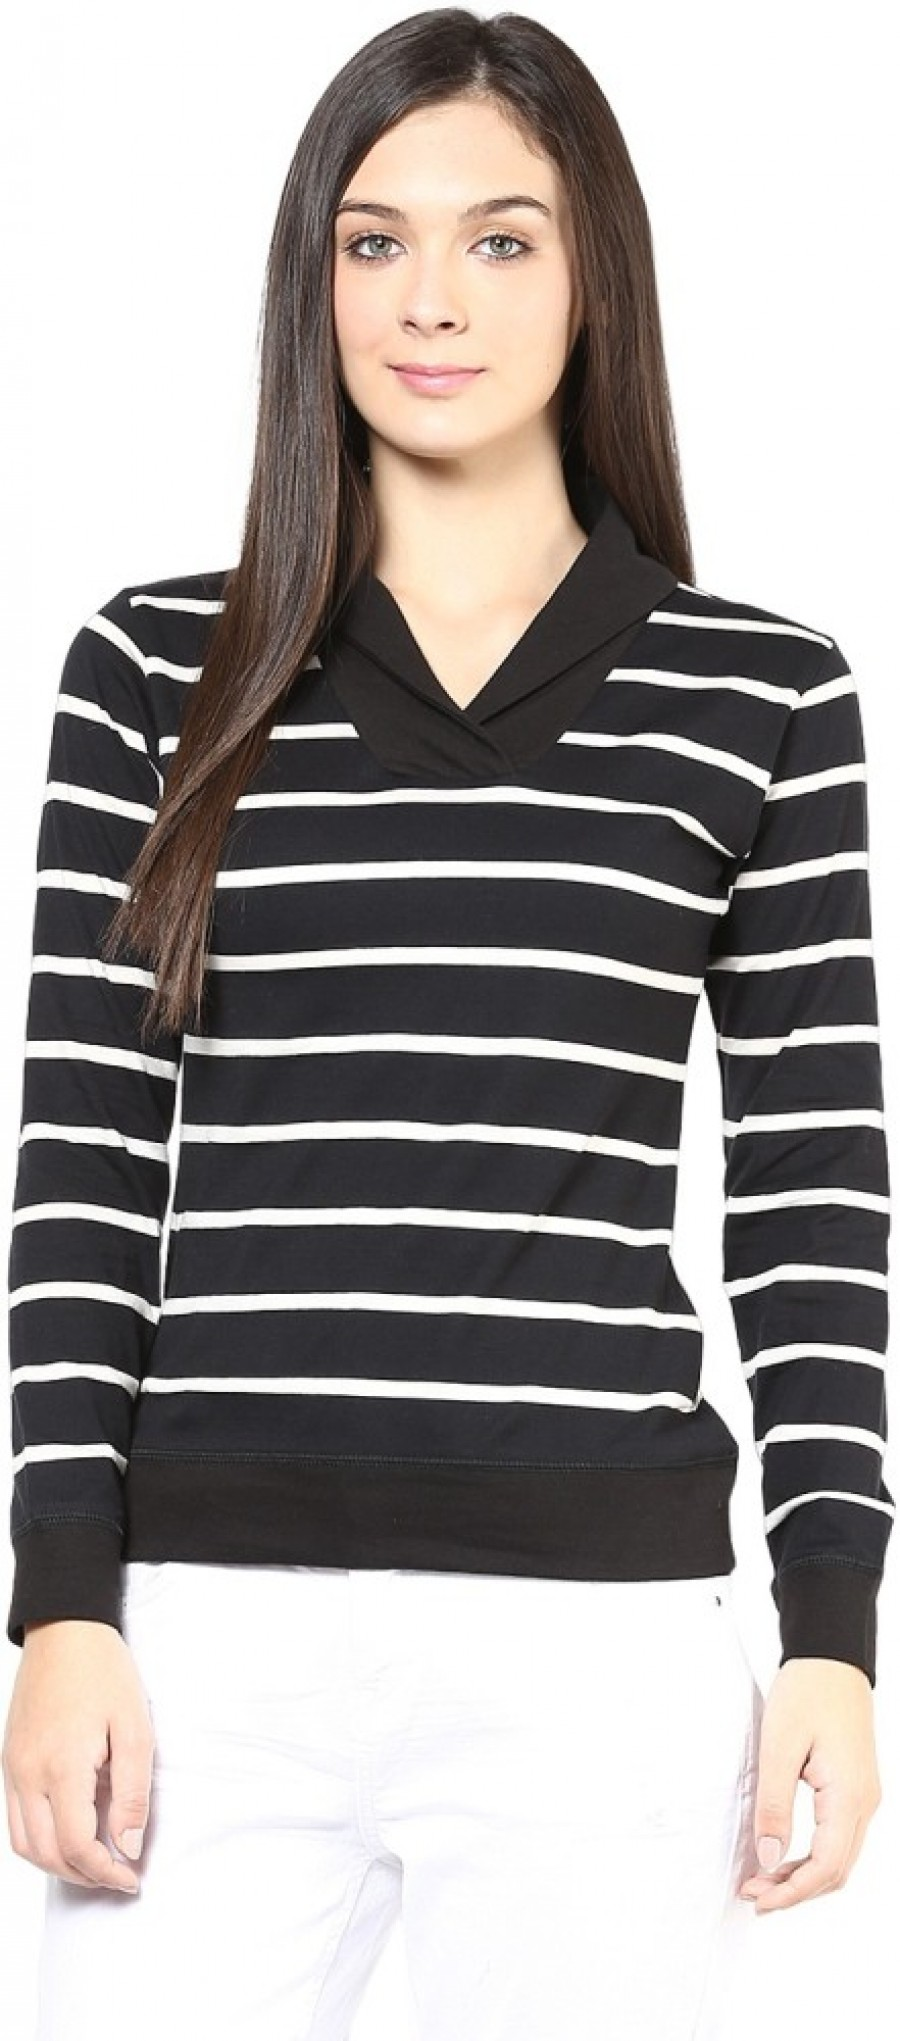 Buy Hypernation Striped Women Draped Neck Black  White T Shirt Online